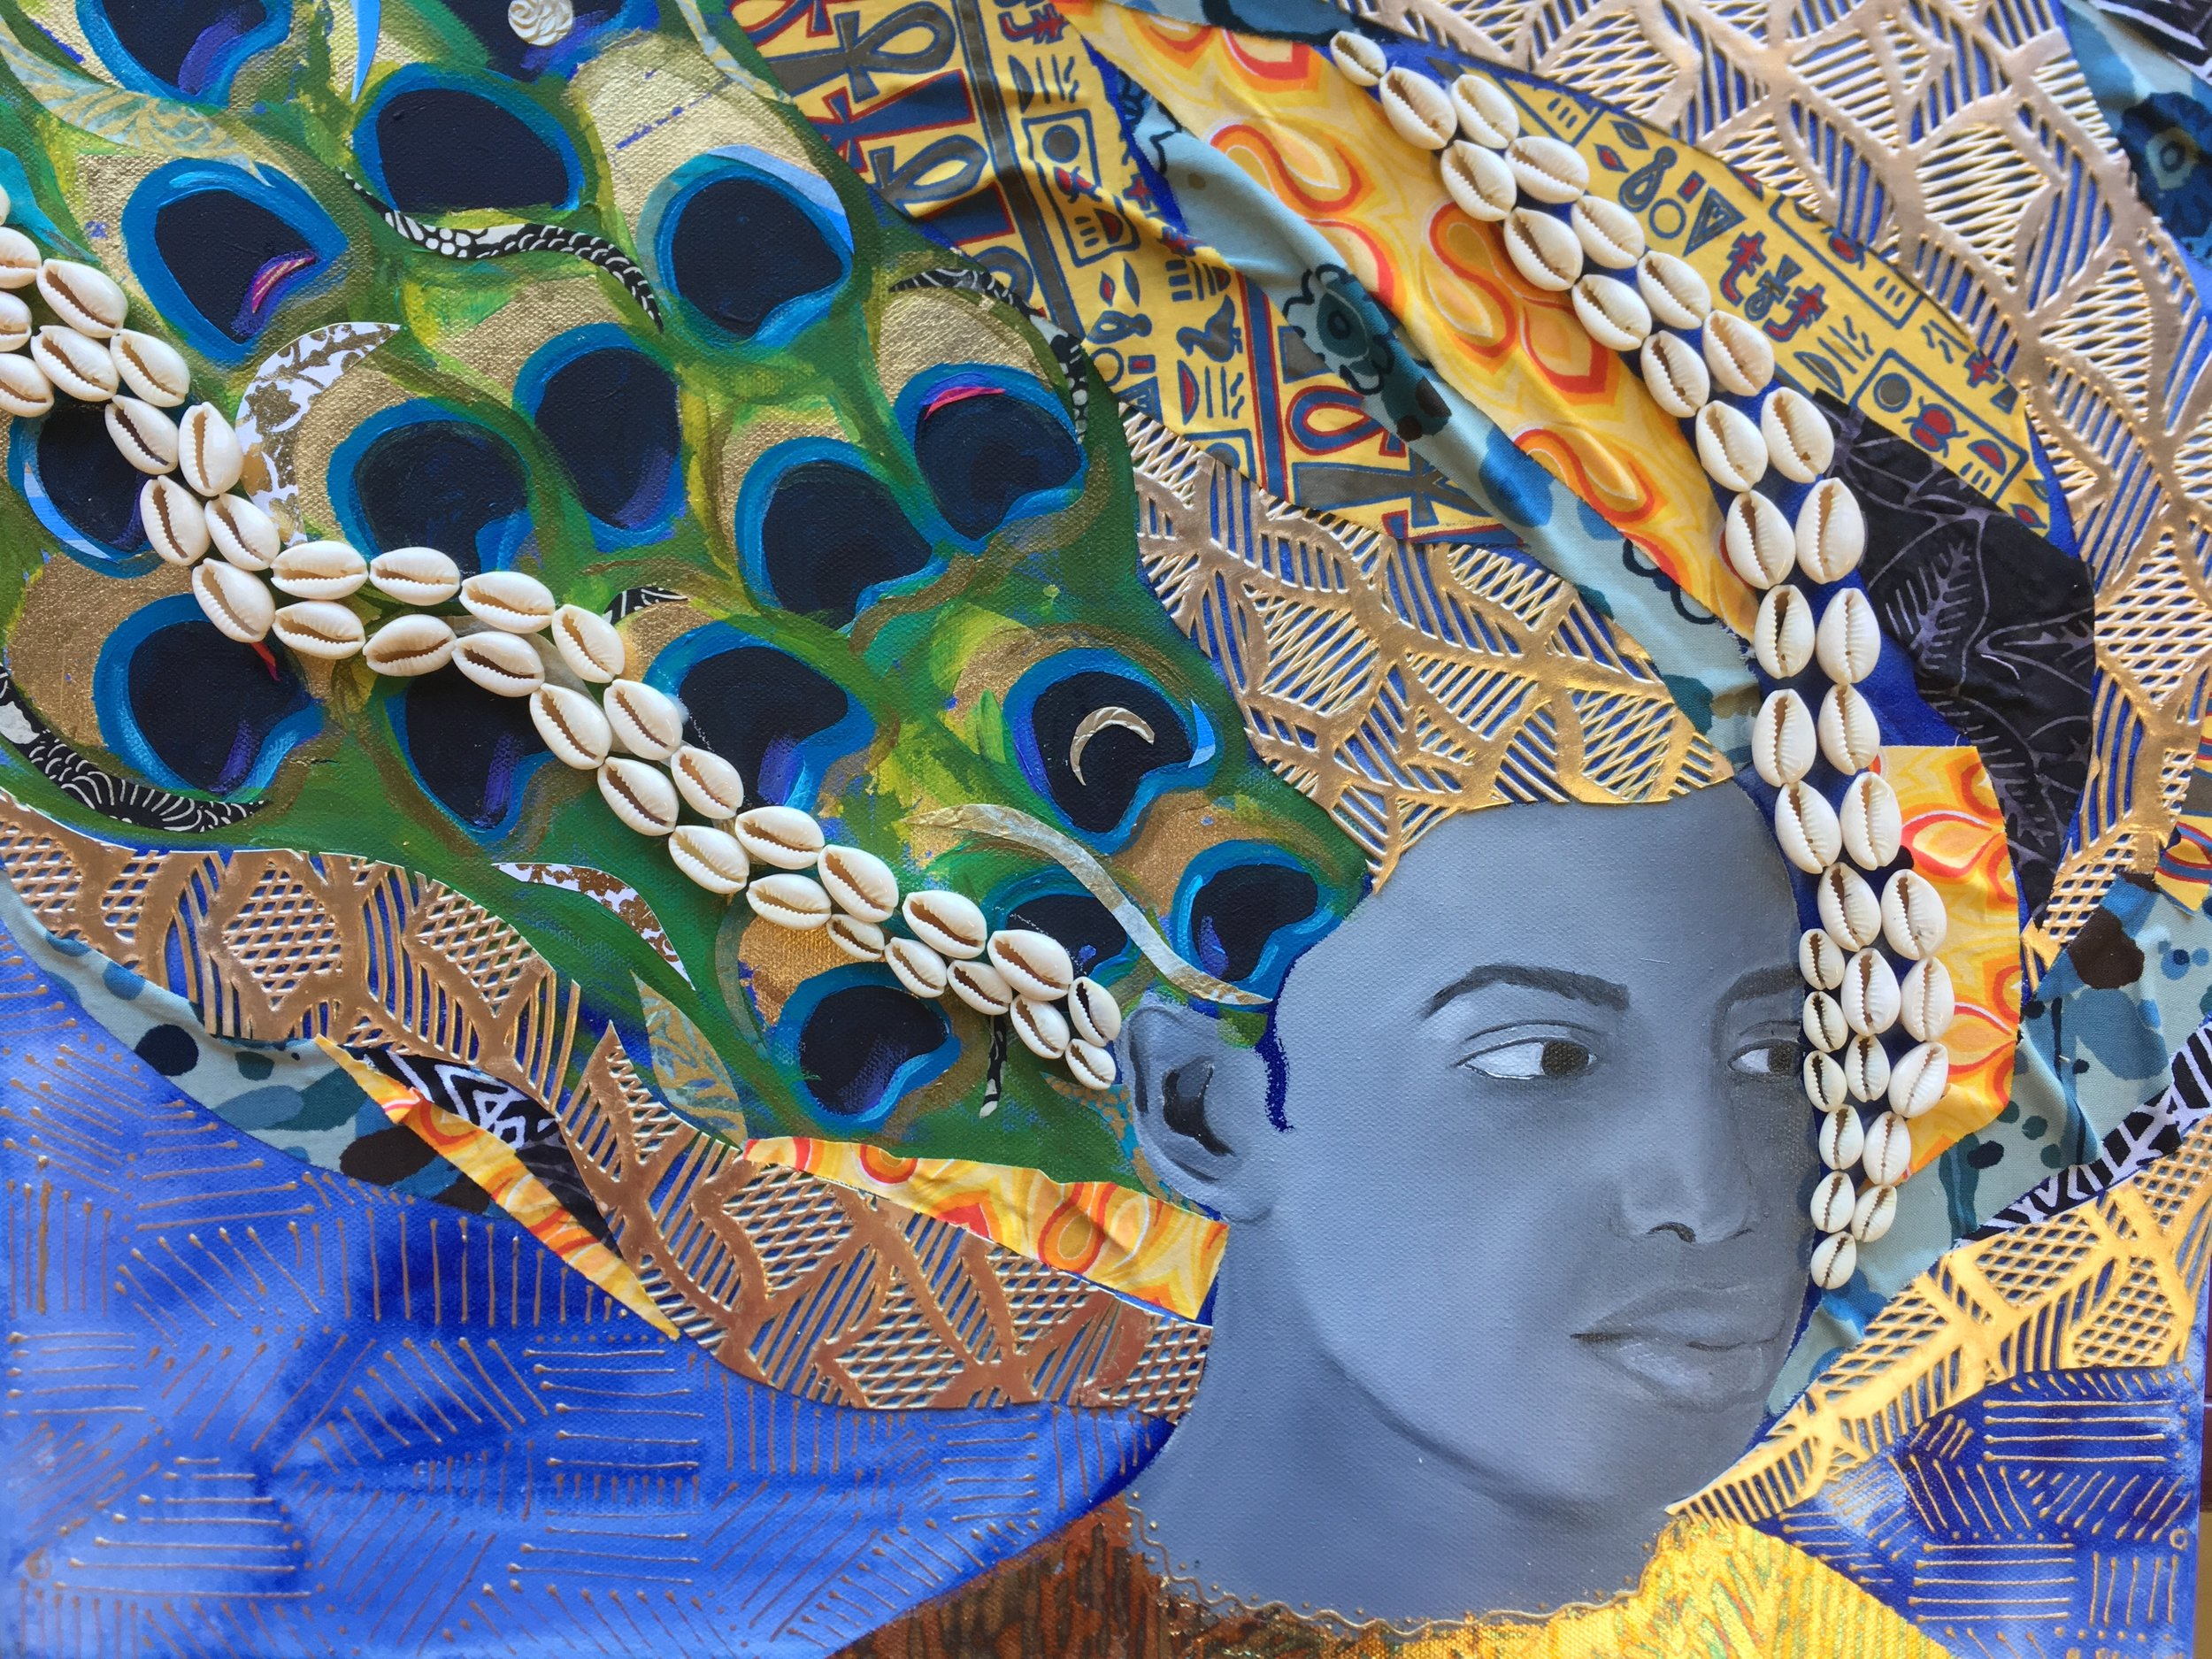 """Oshun,2019, Mixed Media (oil, acrylic, paper, gold leaf, fabric, and cowrie shells on canvas), 20"""" x 16"""""""